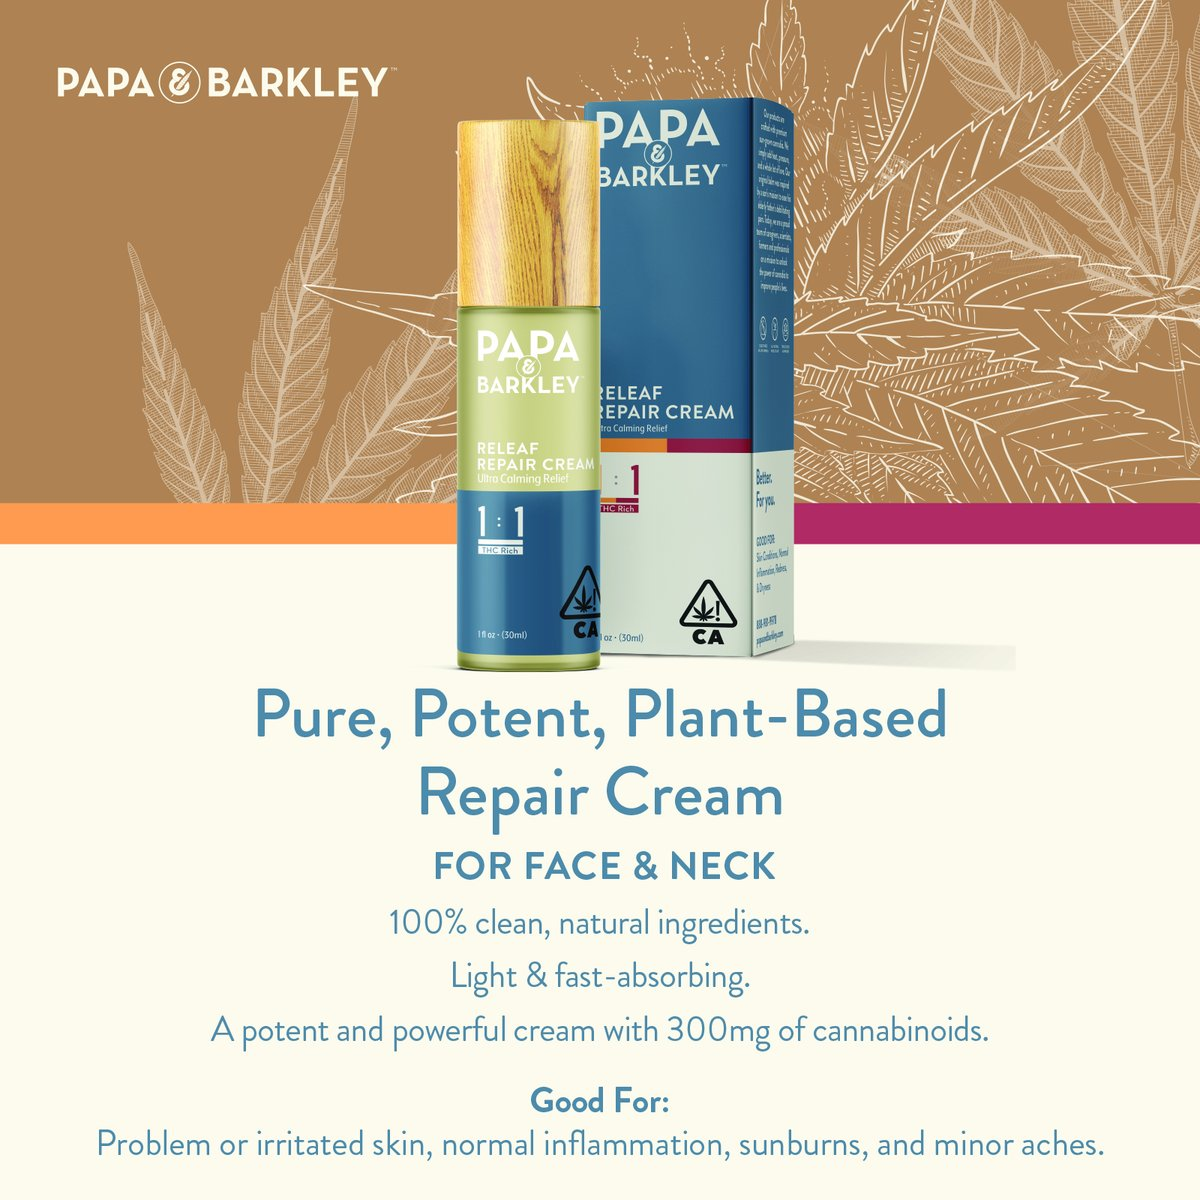 Today's the day! Papa & Barkley's new 1:1 Releaf Repair Cream is finally here! Our light, botanical cream is a therapeutic, fast-absorbing topical, ideal for your face and neck. https://t.co/0eyQVXOnNd